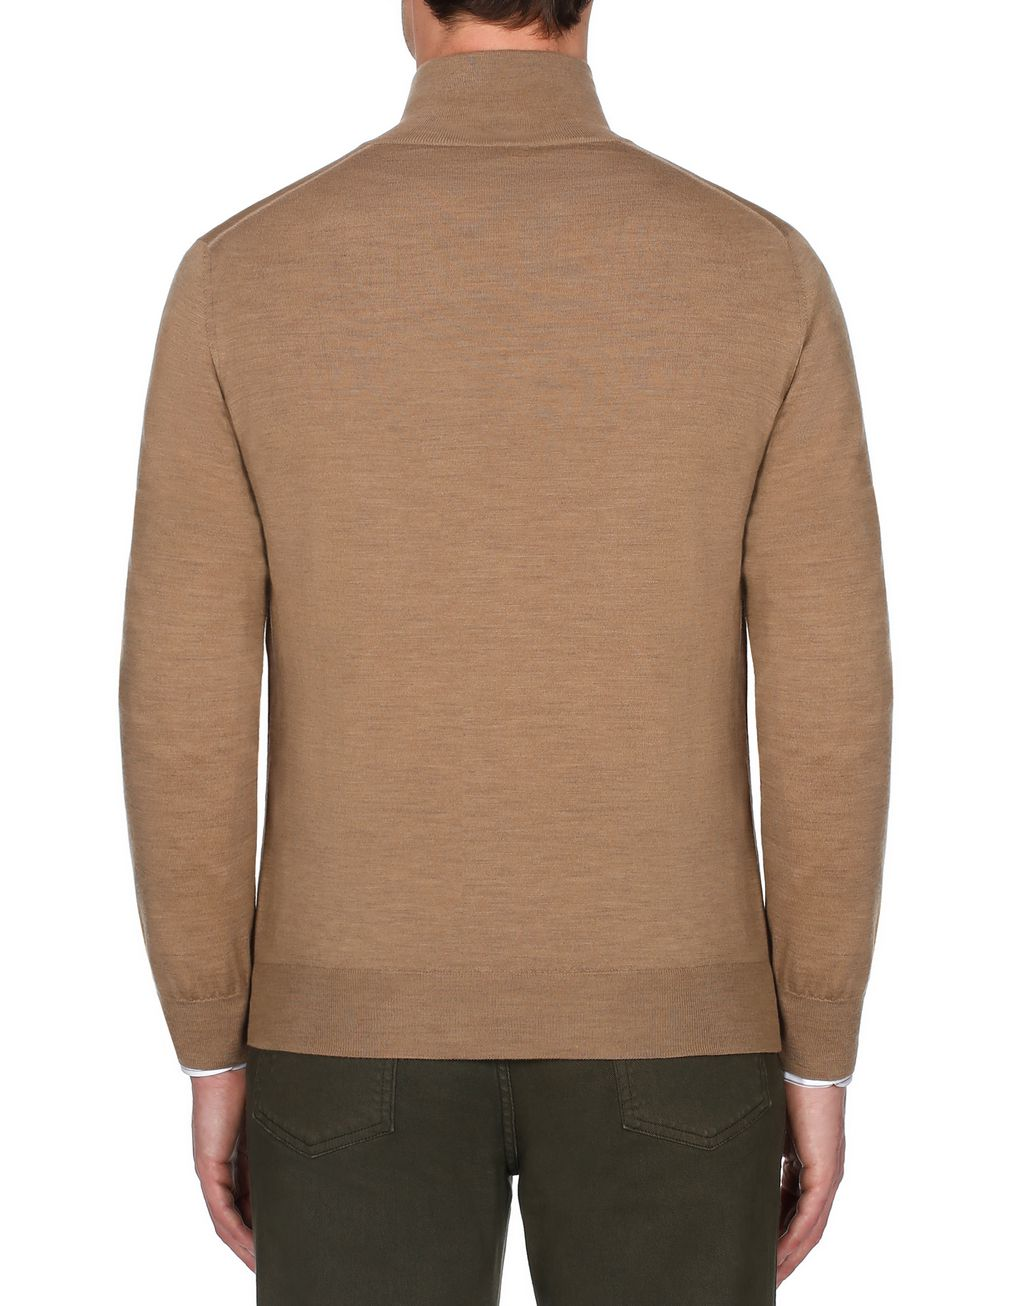 BRIONI Beige Zipped Jumper Knitwear [*** pickupInStoreShippingNotGuaranteed_info ***] d